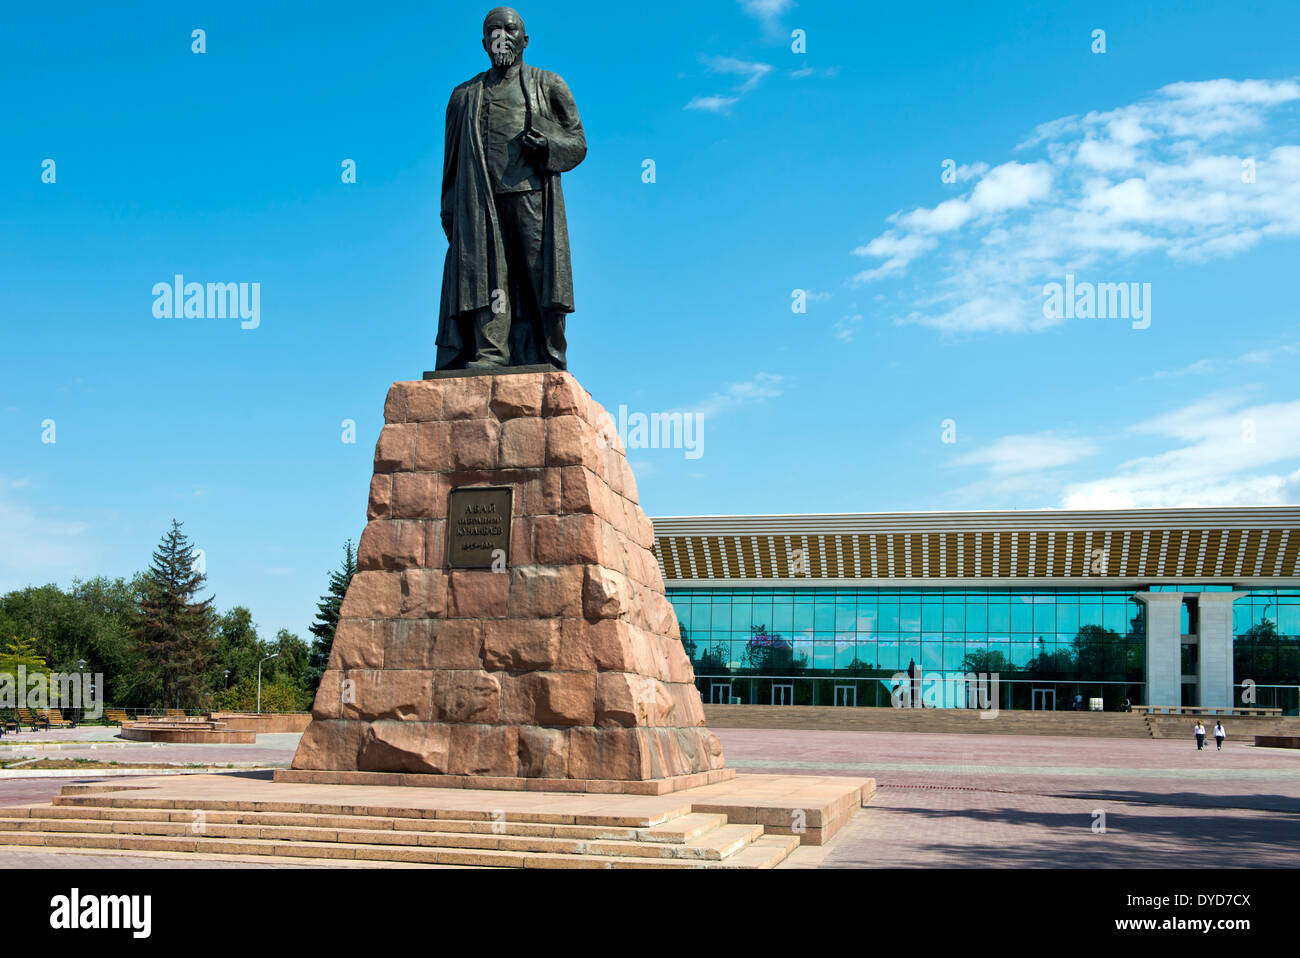 Monument to the poet Abai Kunanbaev in front of the Palace of the Republic, Almaty, Kazakhstan - Stock Image